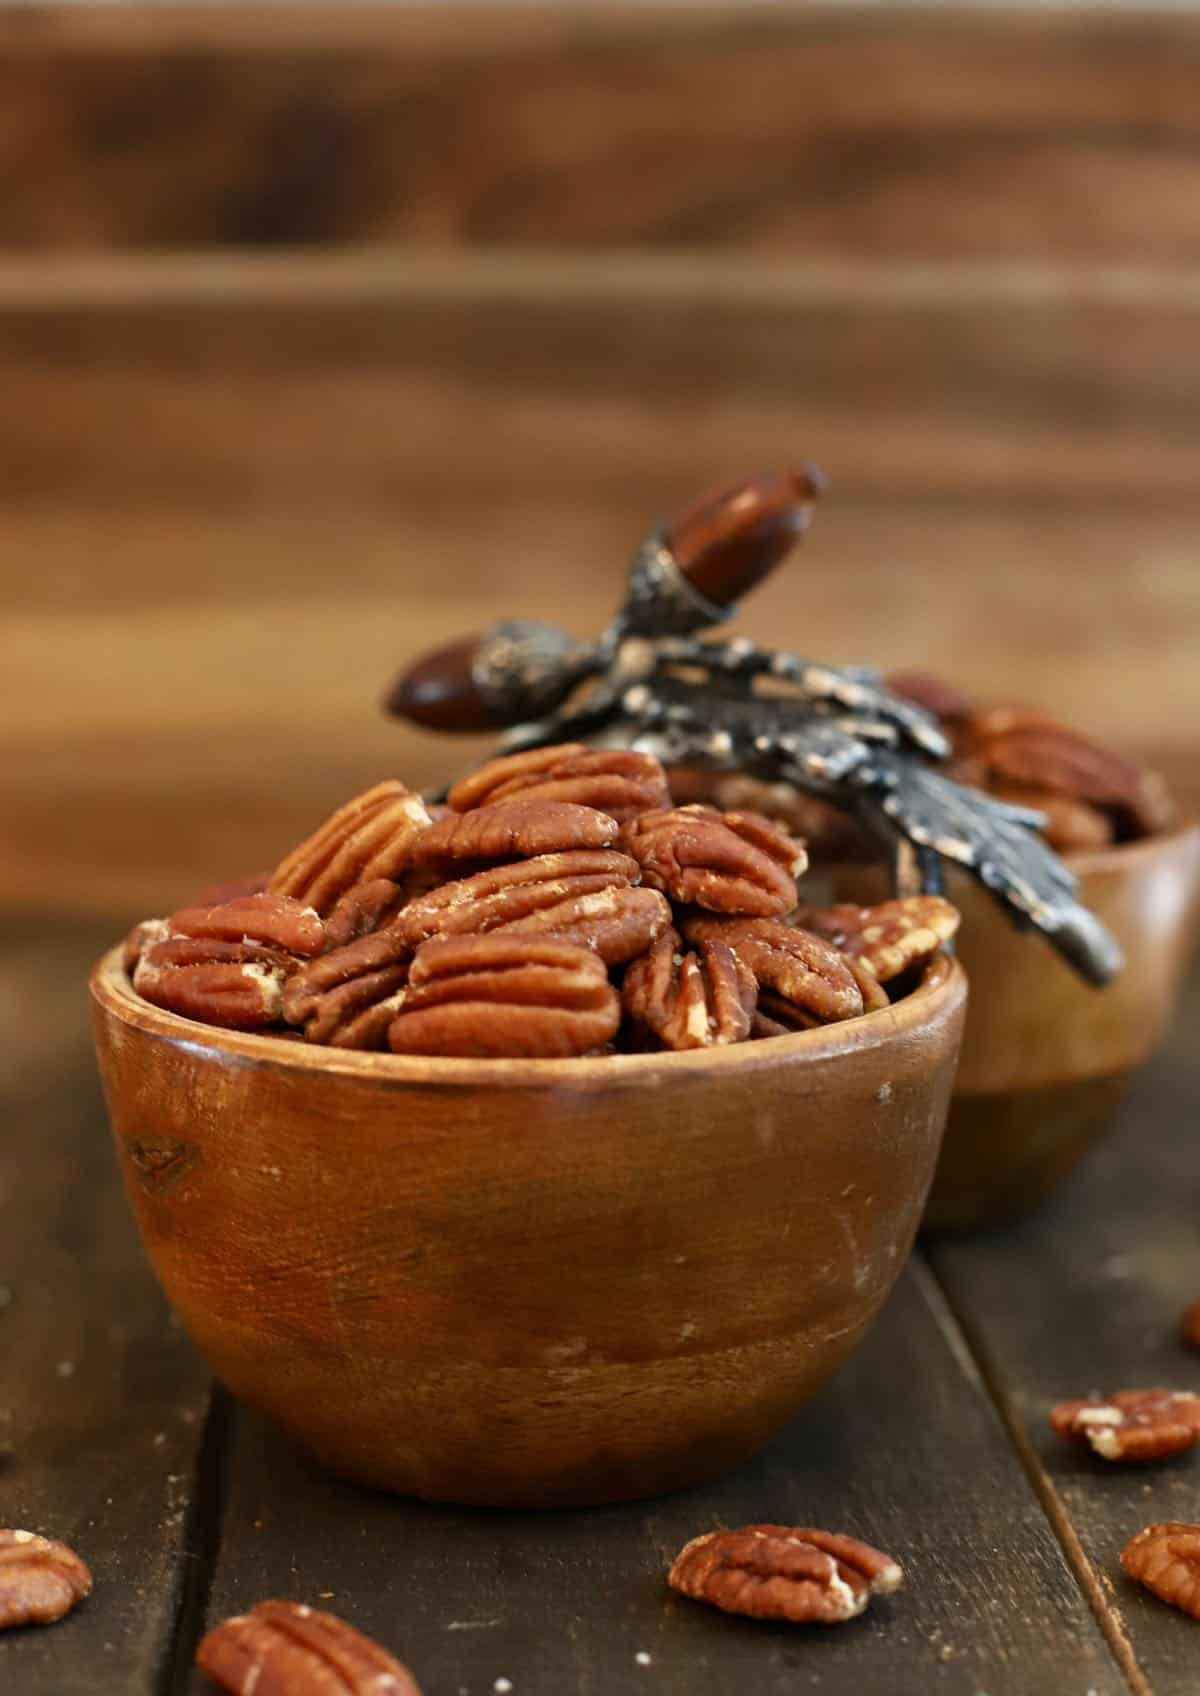 Roasted pecans in a wooden dish.